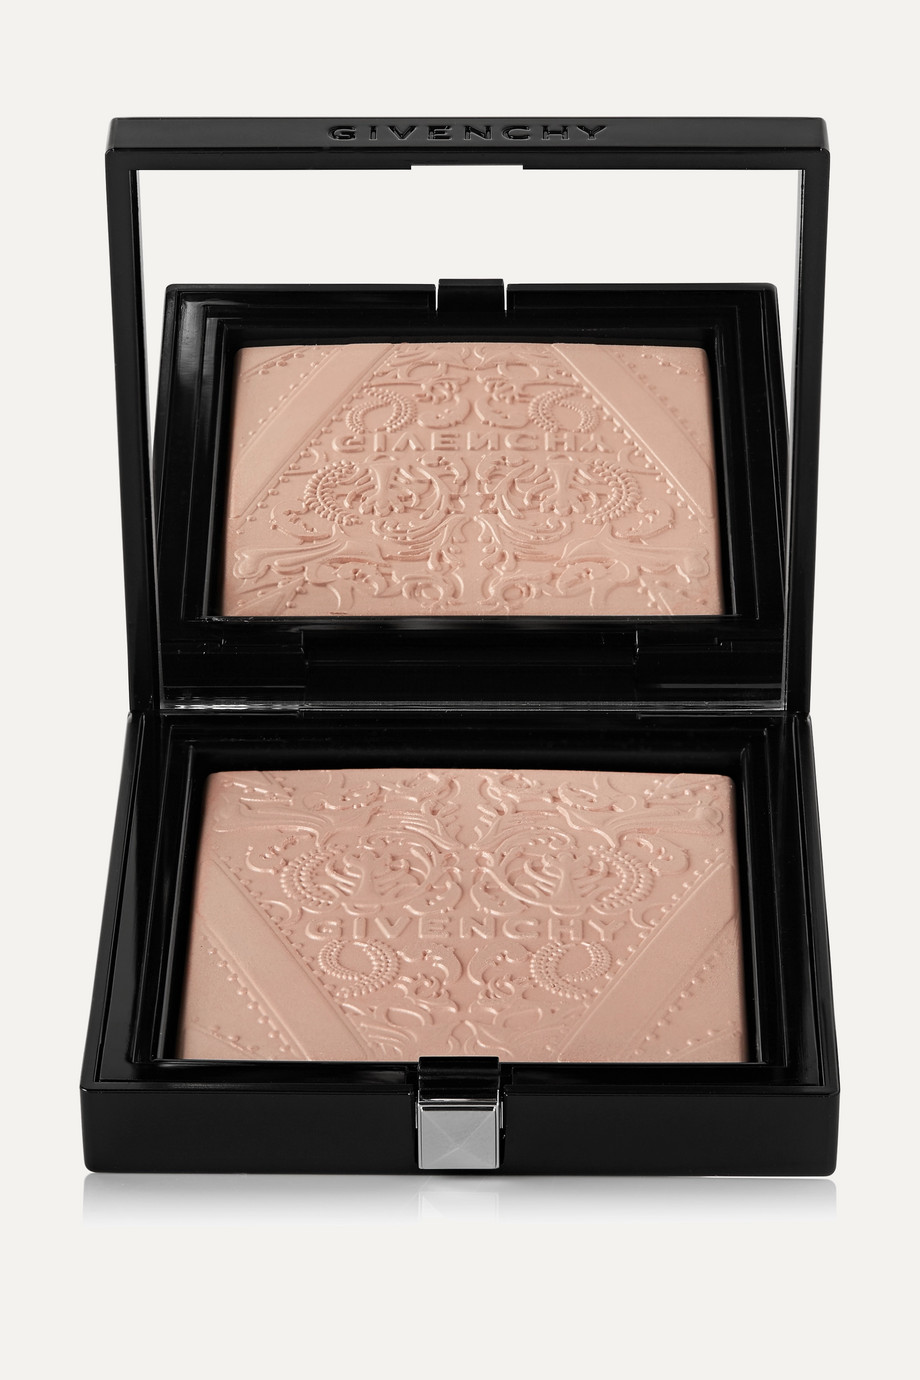 Givenchy Beauty Teint Couture Shimmer Powder - Shimmery Pink No.1